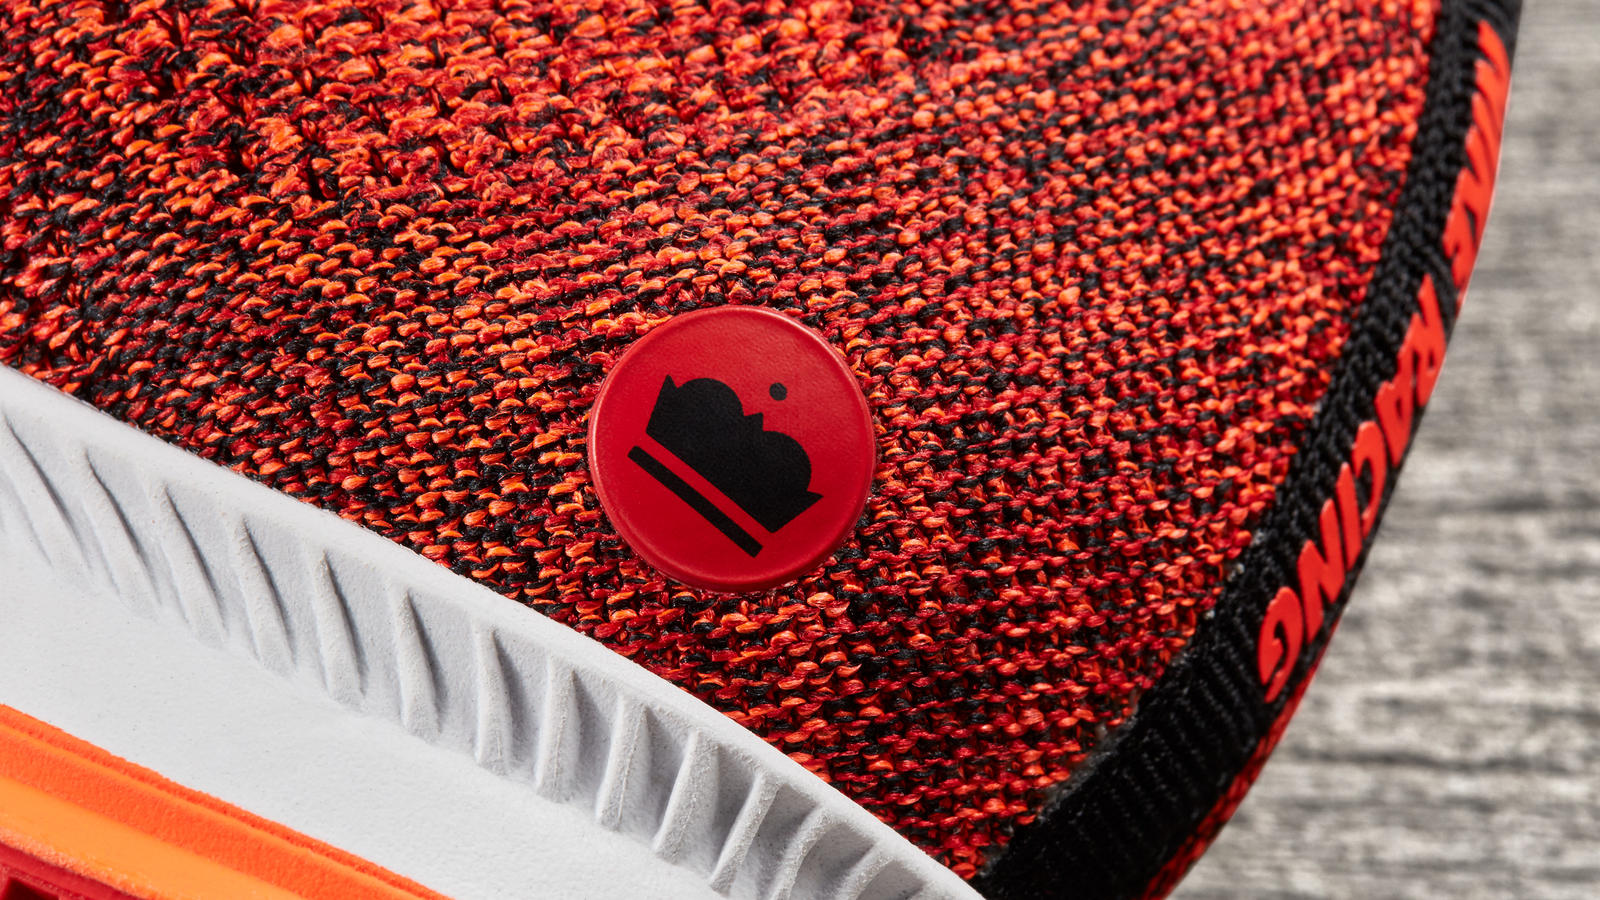 170320 footwear rn red flyknit streak 0334 hd 1600